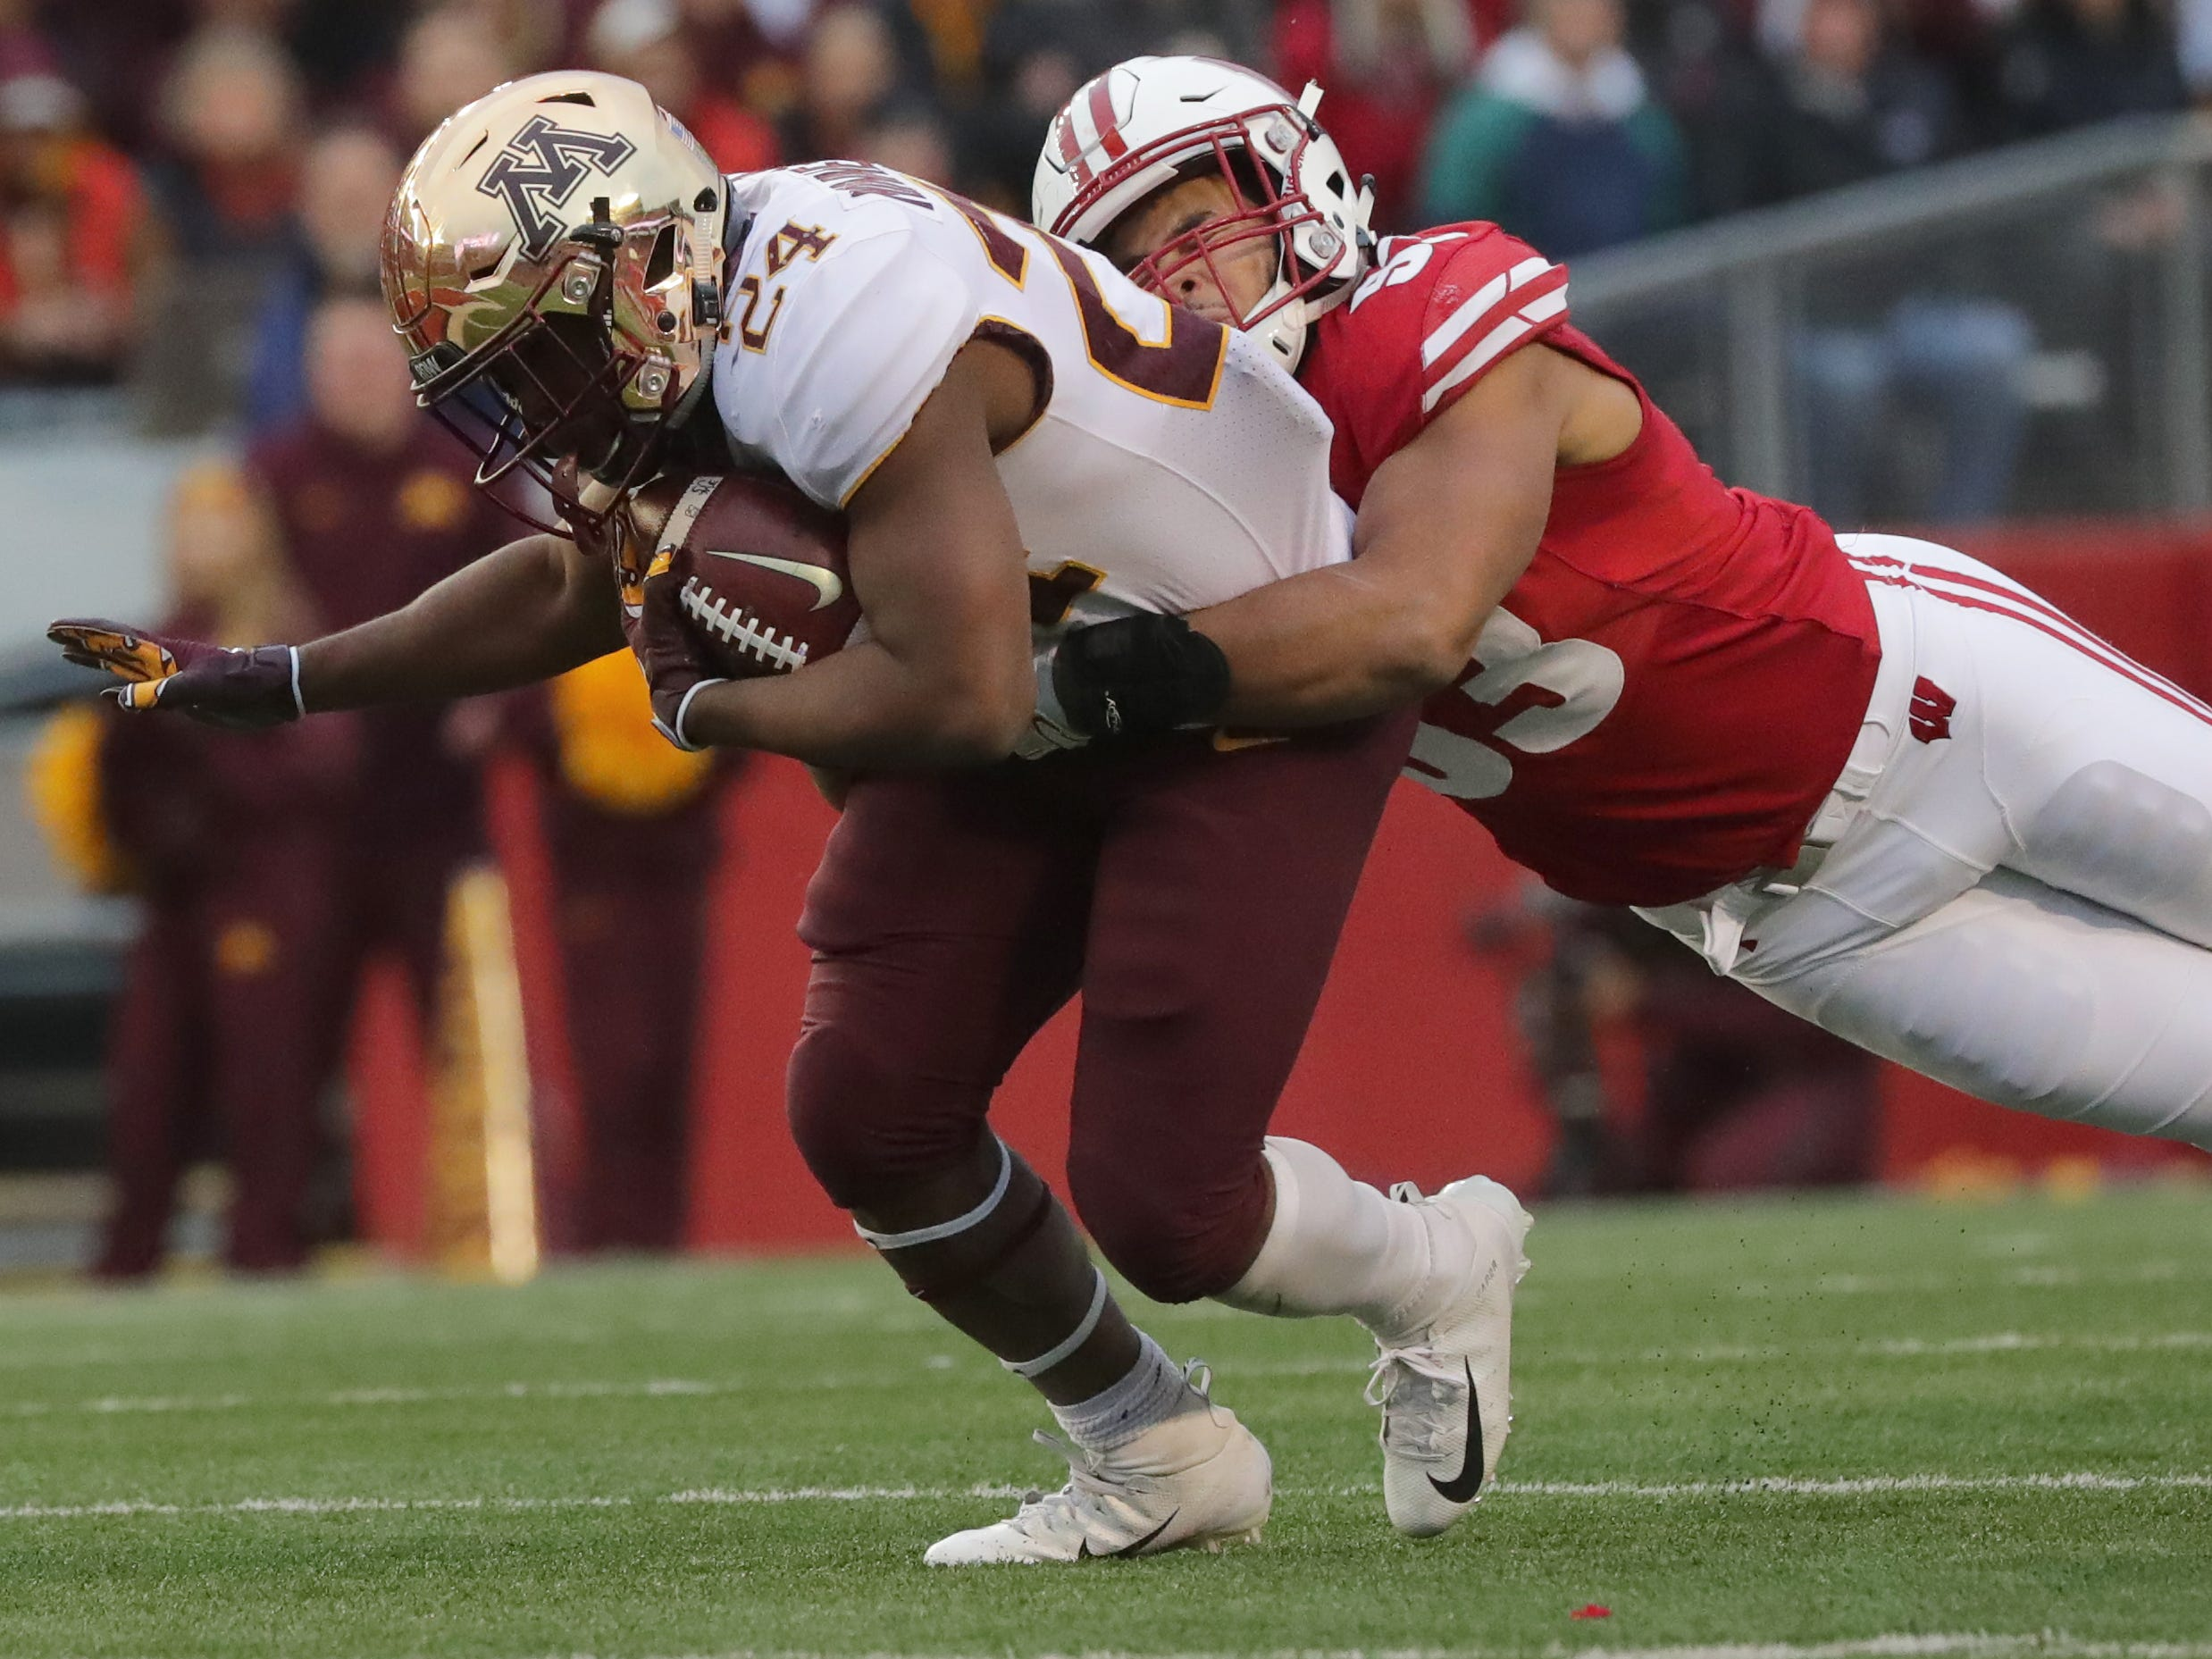 Minnesota running back Mohamed Ibrahim picks up a first down before being tackled by Wisconsin linebacker T.J. Edwards during the first quarter Saturday.